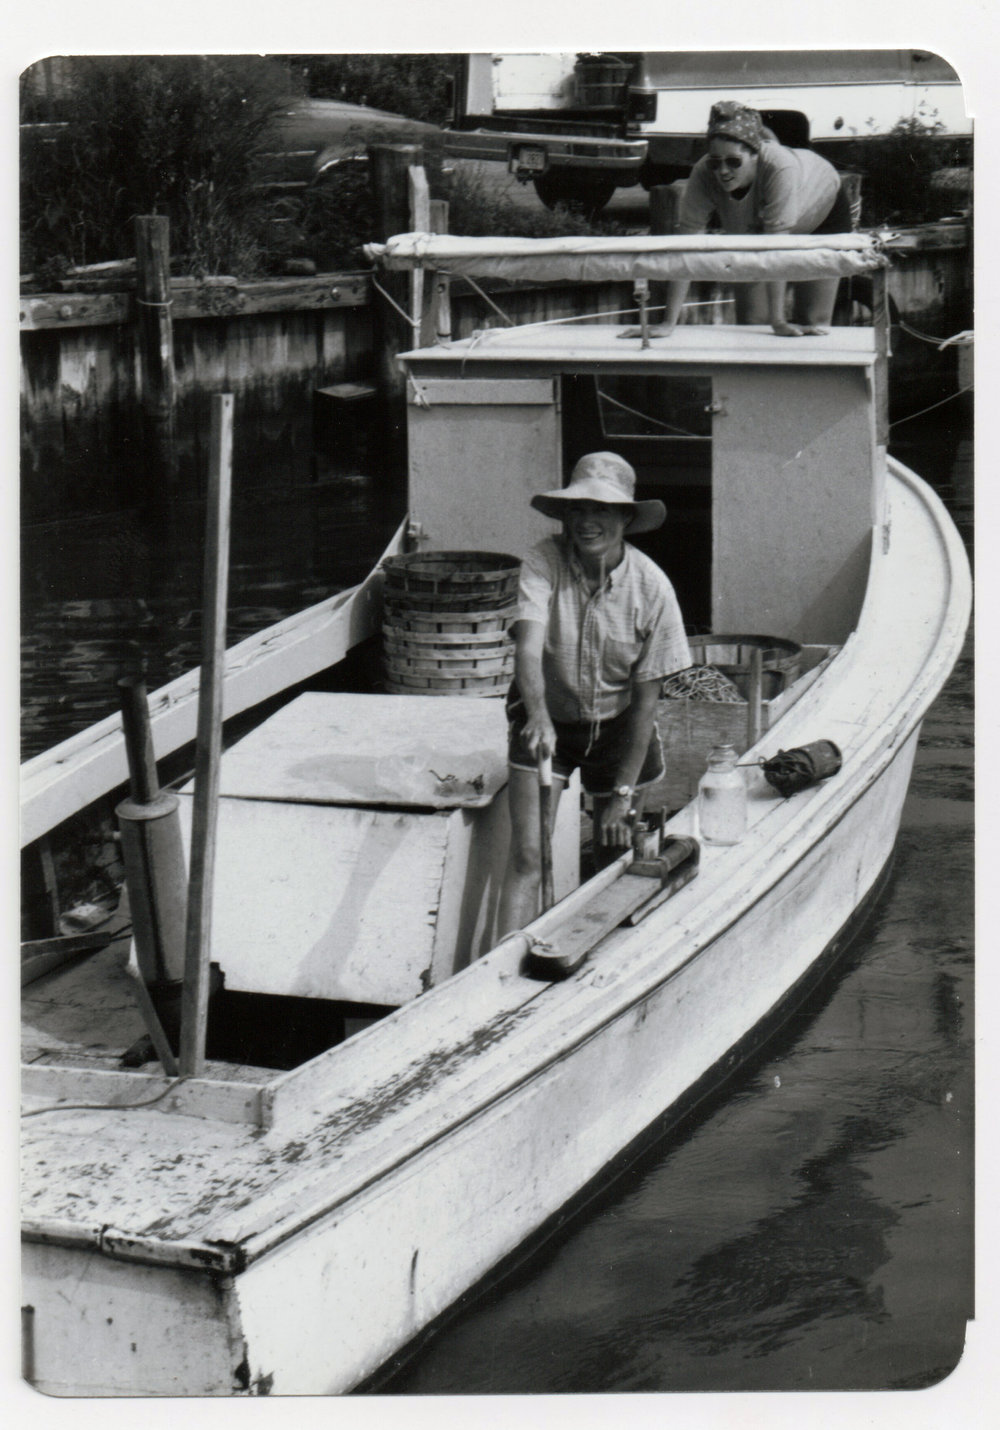 Not all Chesapeake watermen are actually men. This image taken by Lila Line in 1981, is a perfect example of the tenacity, tirelessness, and work ethic of plenty of the Bay's water-working-women. While many women work off the water in watermen families, picking crabs or placing orders, some women choose to follow the example of their fathers or brothers, buy their own boat, and make a living from what the Bay provides. In this photo, Kathleen, a Tilghman Island waterman, is heading out for a long day of crabbing, despite being heavily pregnant. She continued to work until three weeks before her son, Noah, was born.    Image by Lila Line, collections of the Chesapeake Bay Maritime Museum.